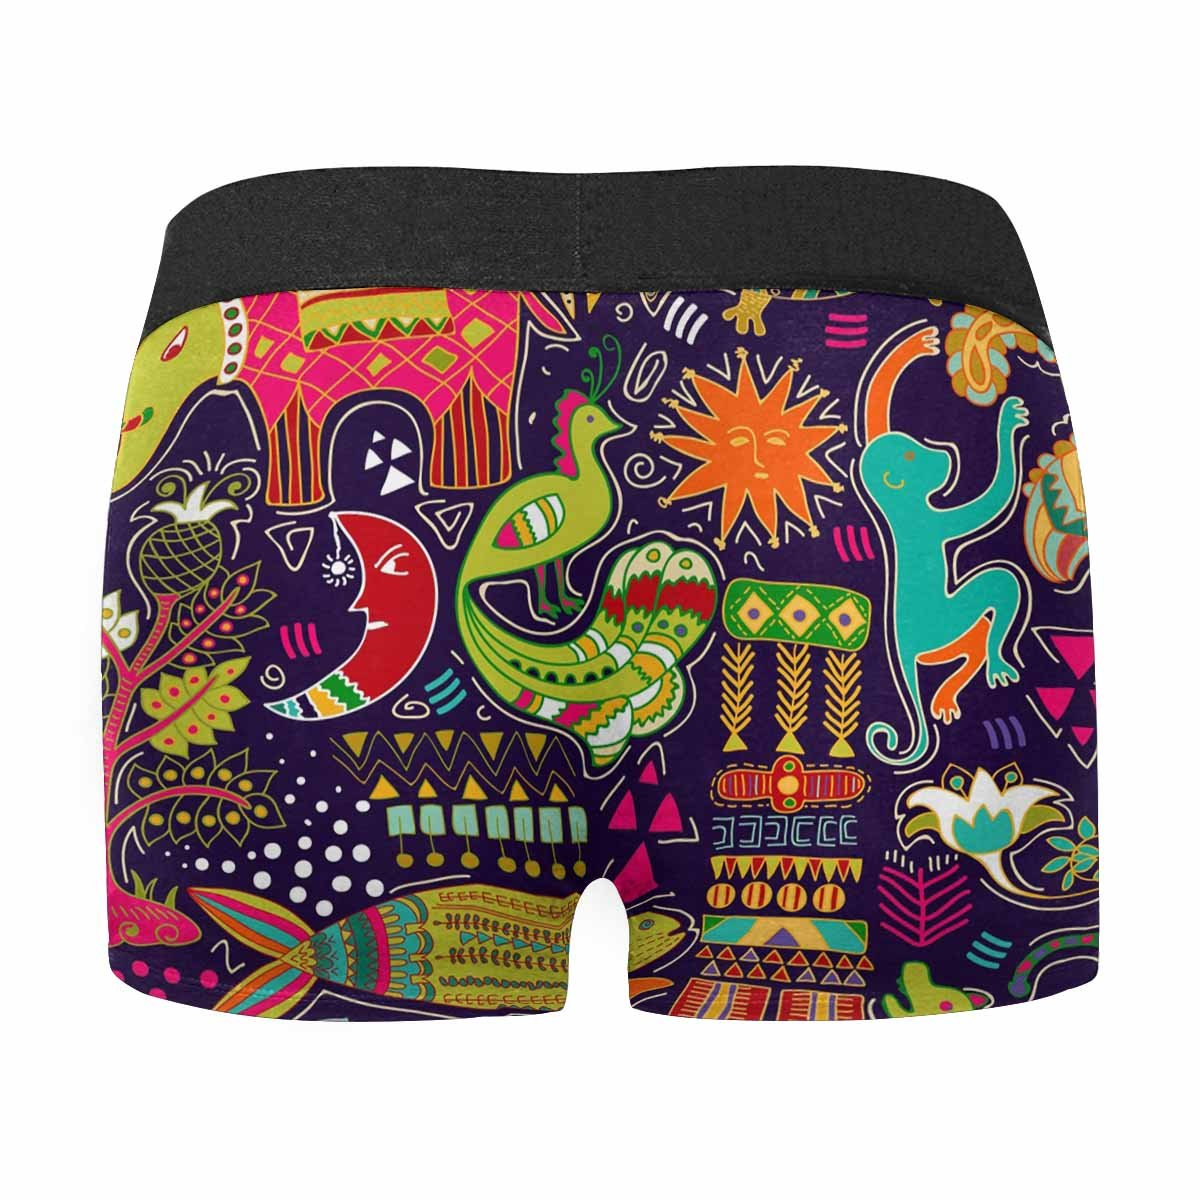 INTERESTPRINT Mens Boxer Briefs Underwear Colorful Tropic Backdrop with Animals and Geometric Elements XS-3XL